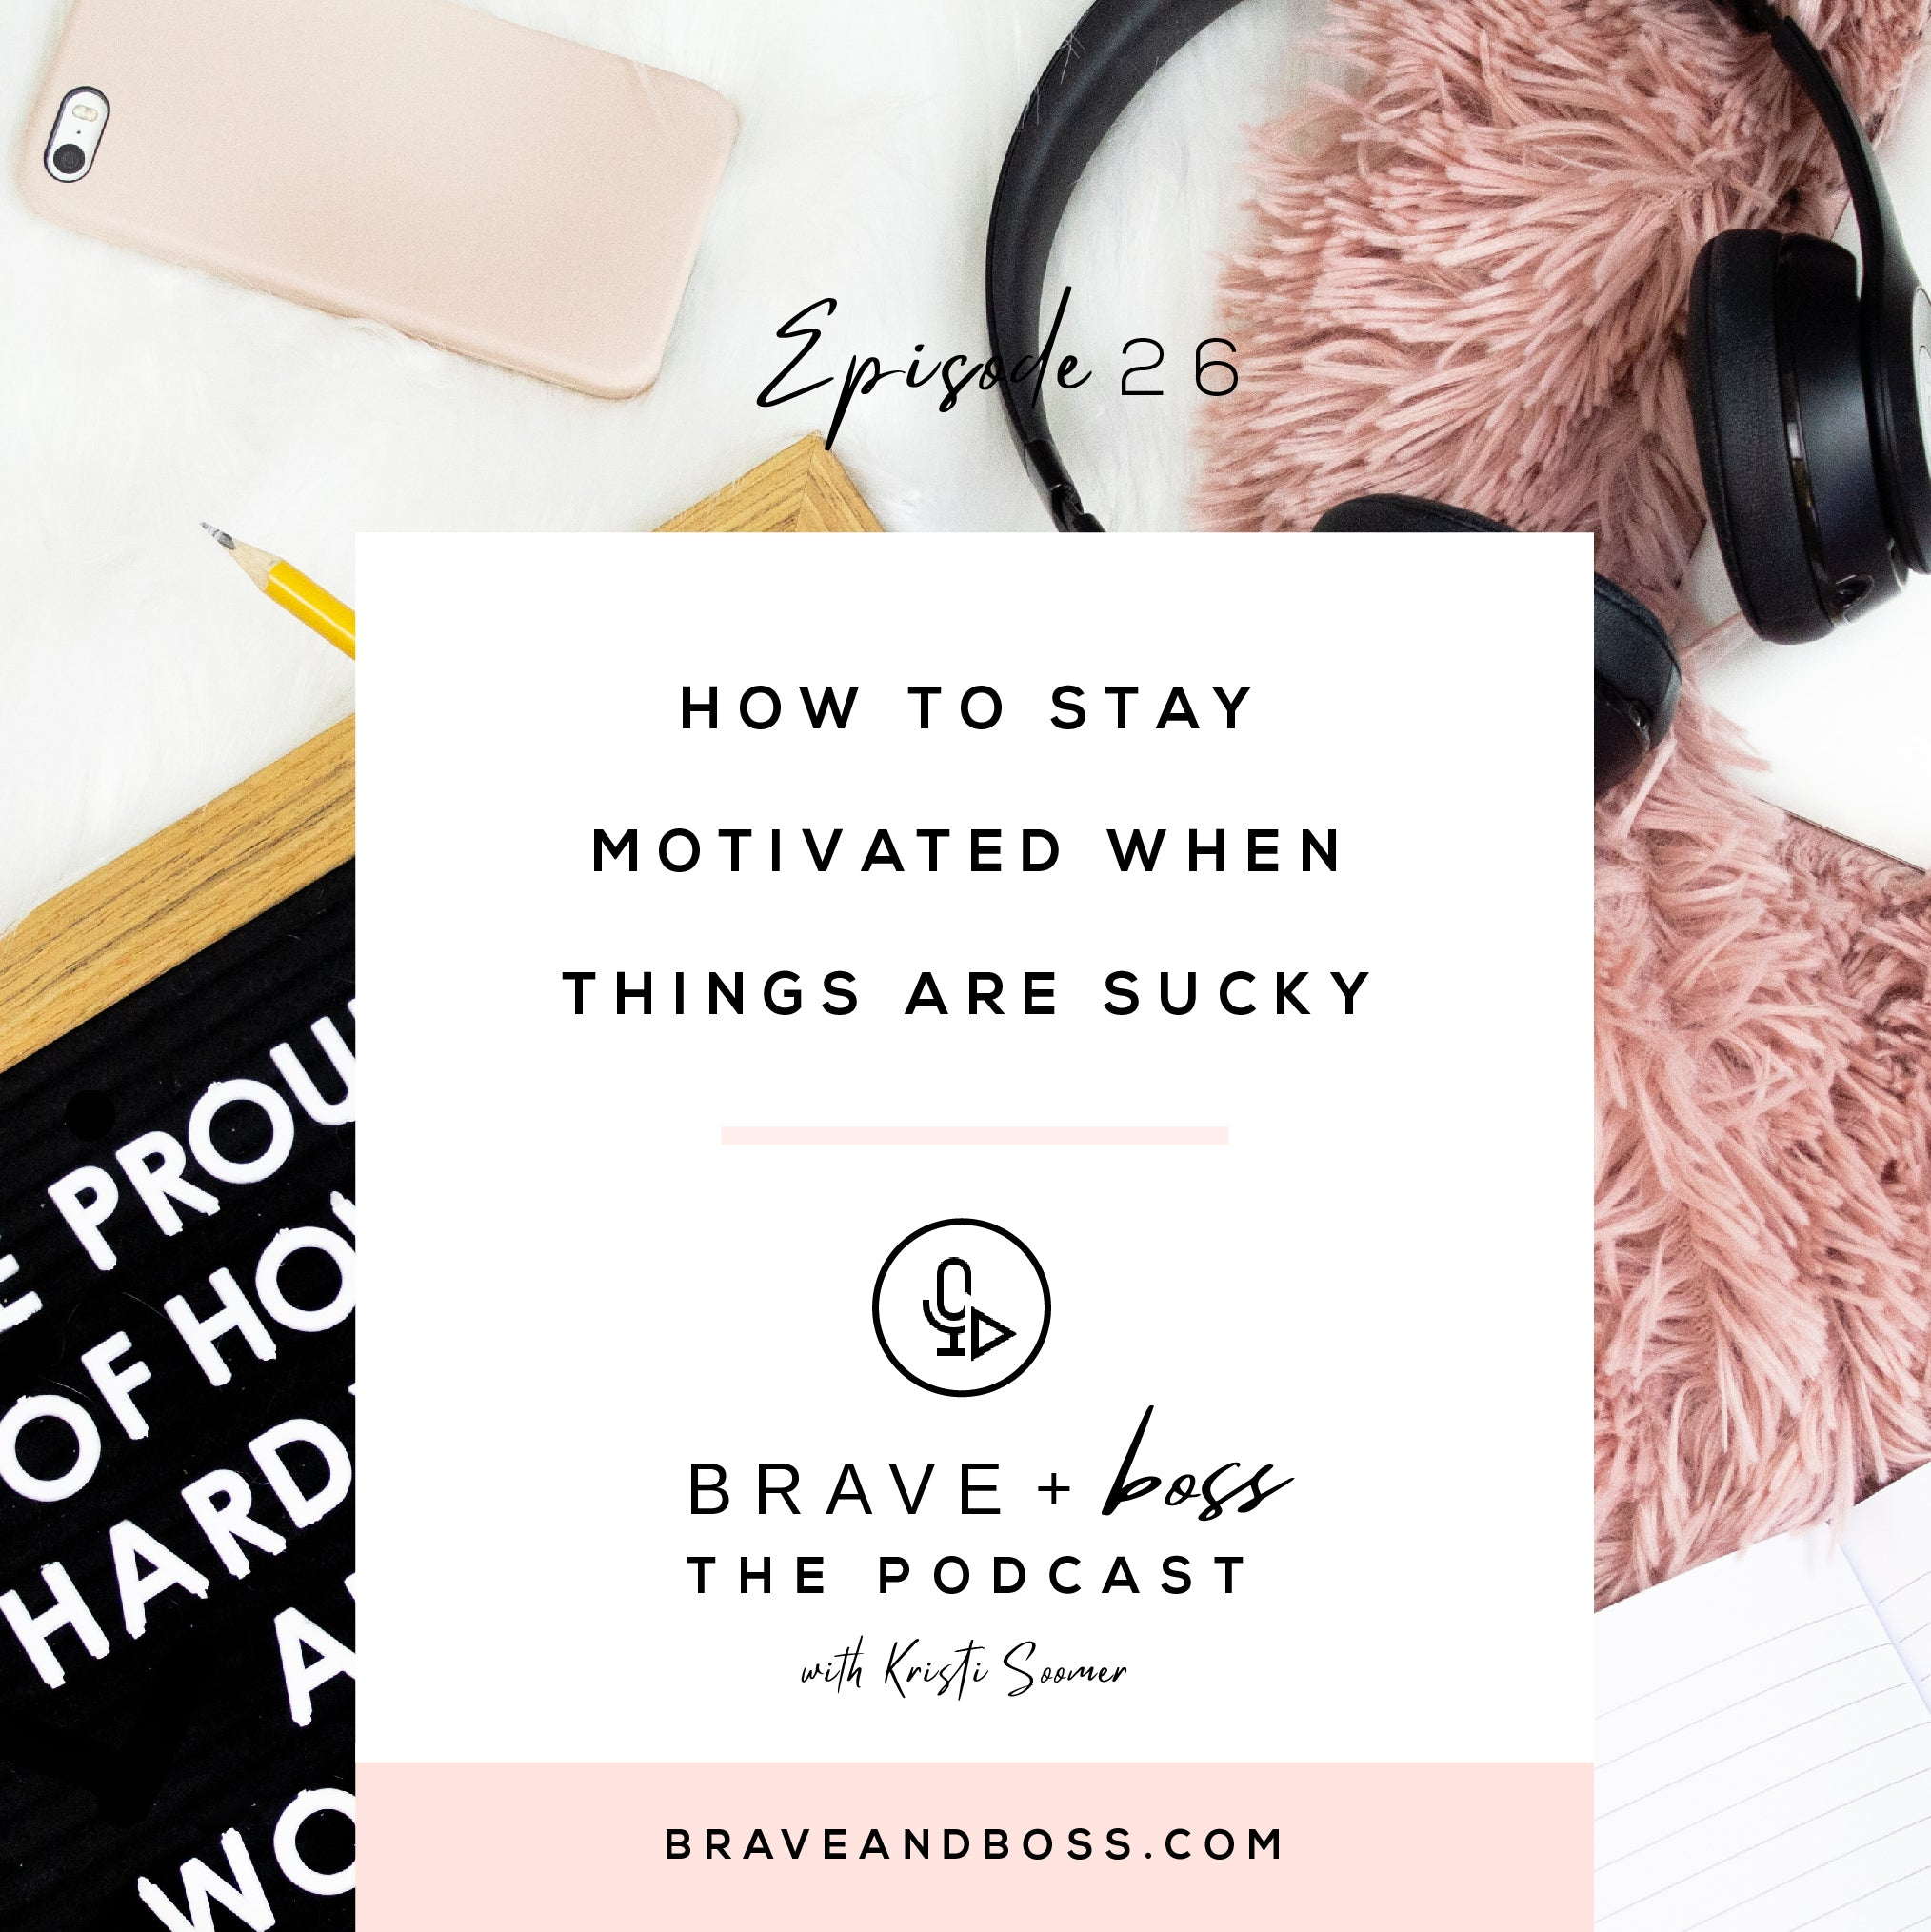 How to Stay Motivated when Things are Sucky